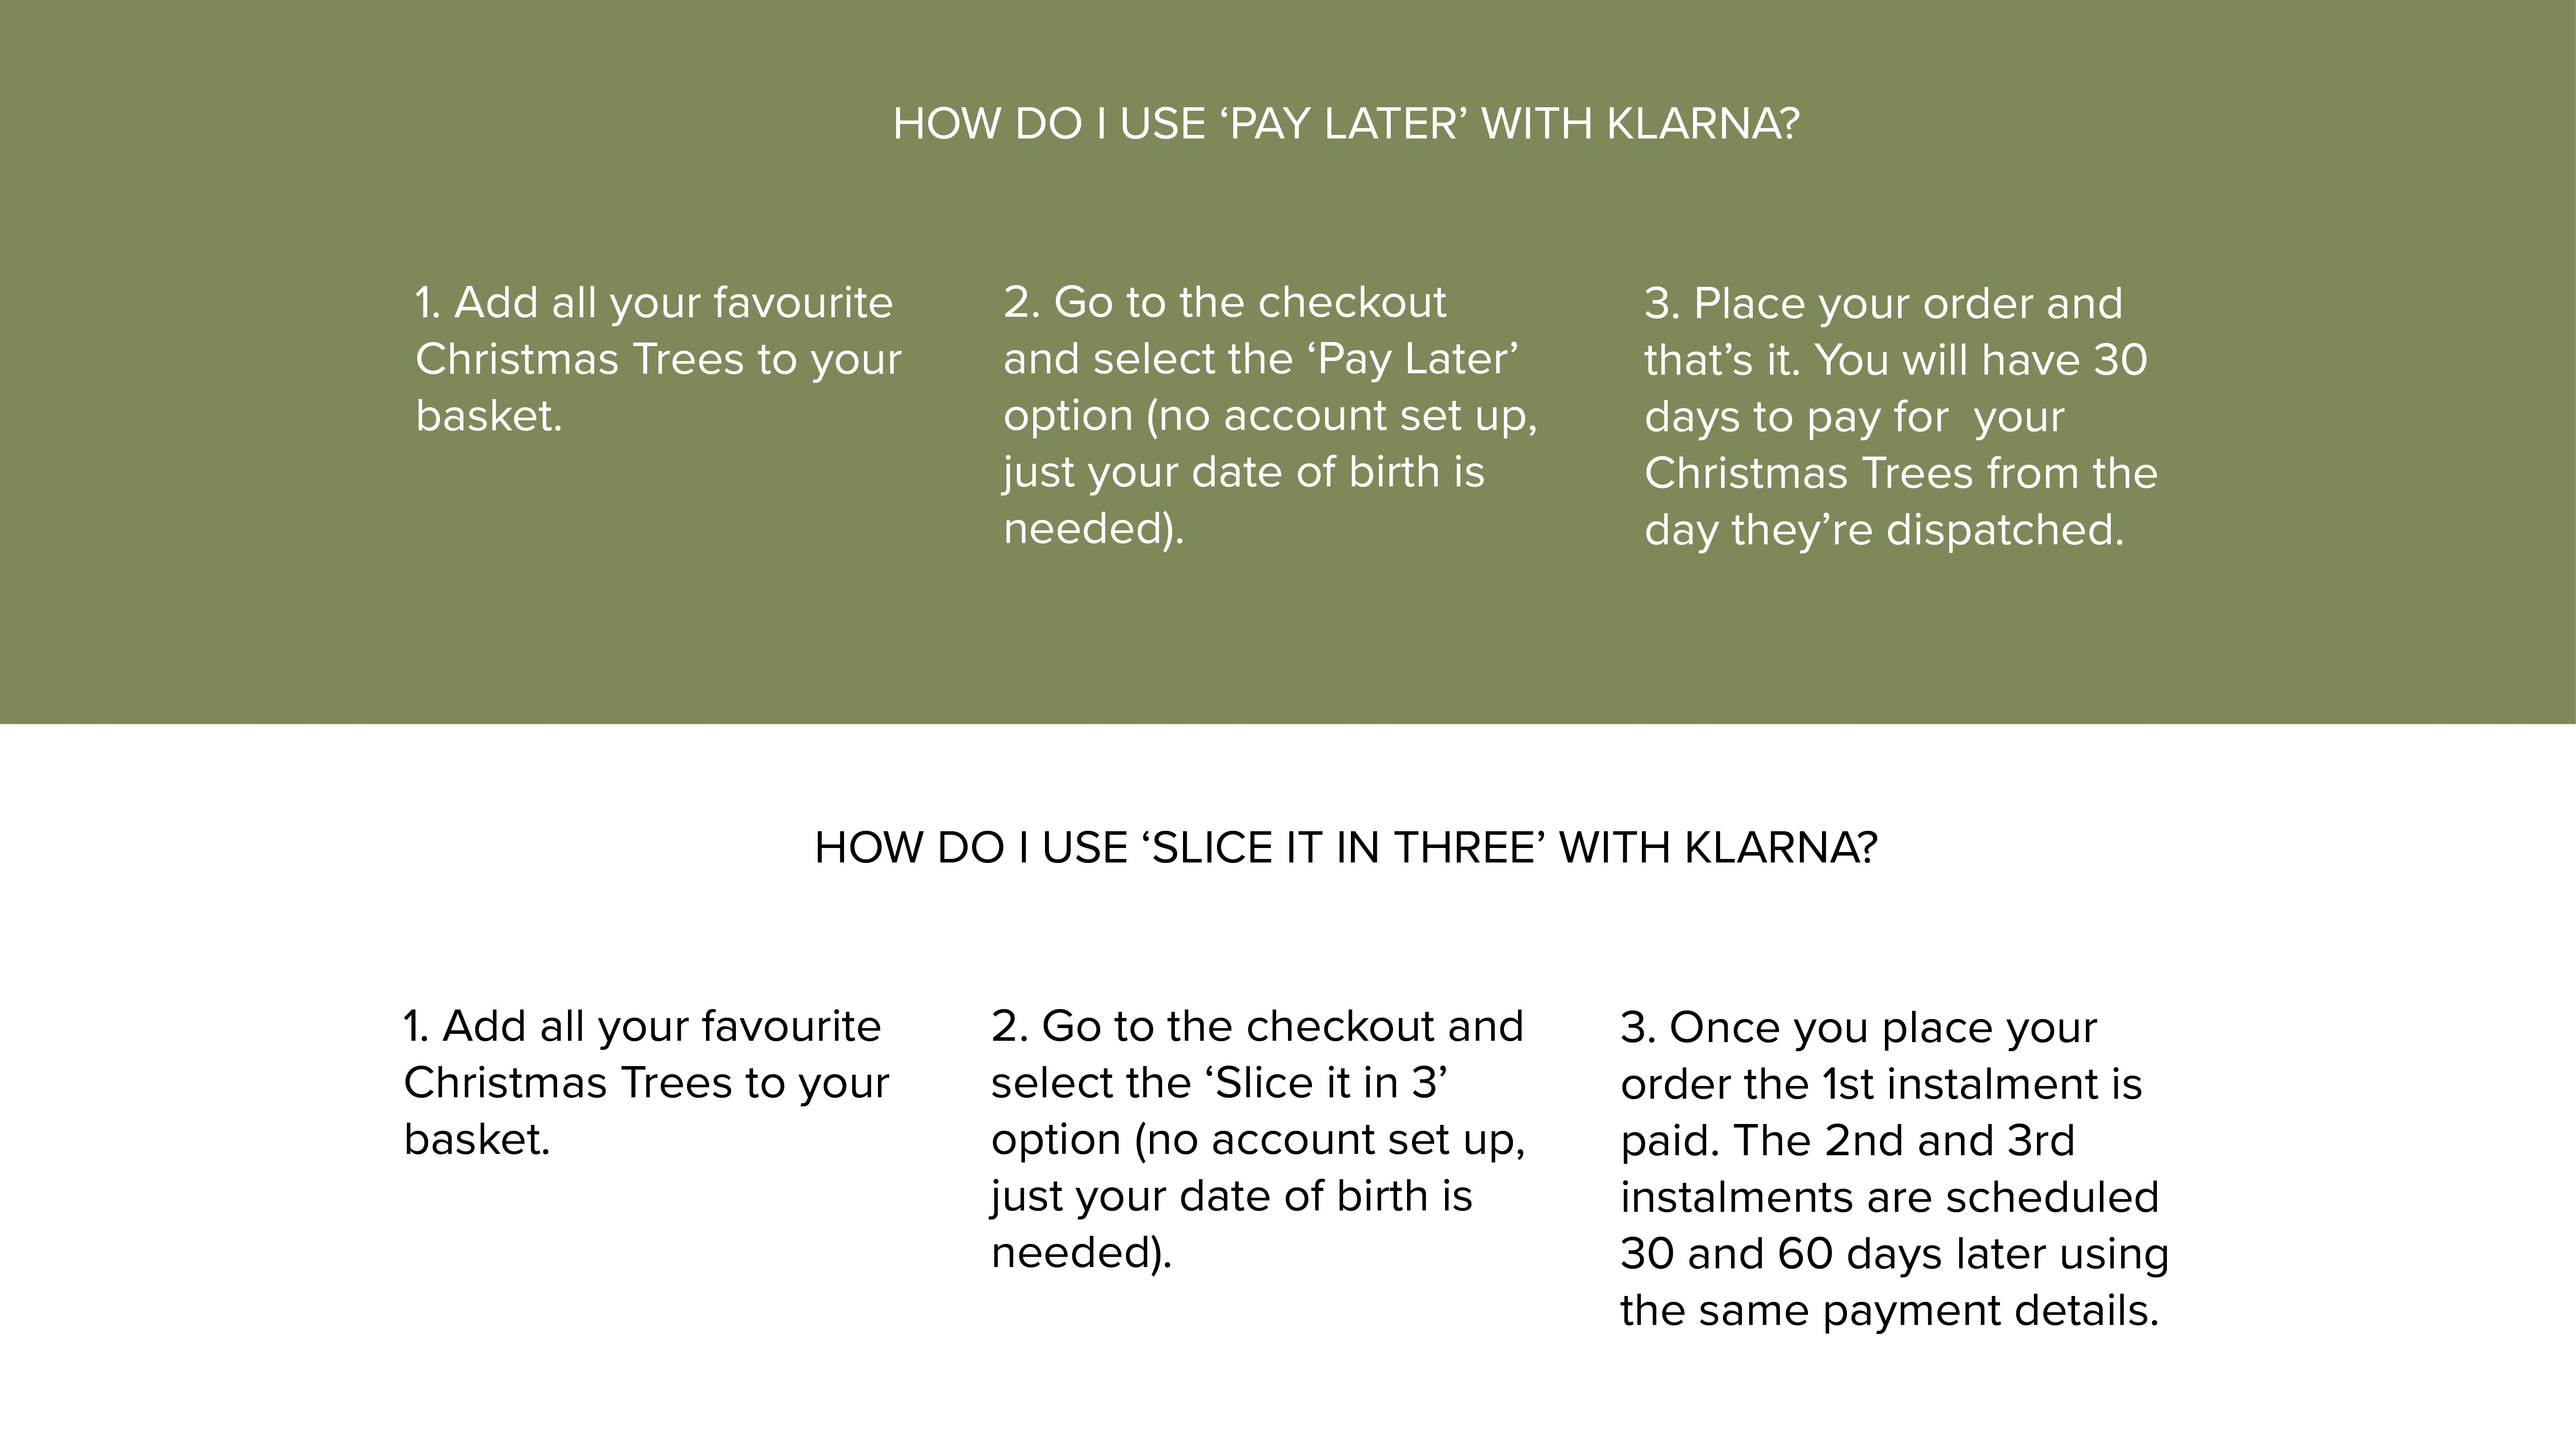 Buy Artificial Christmas Trees with Klarna